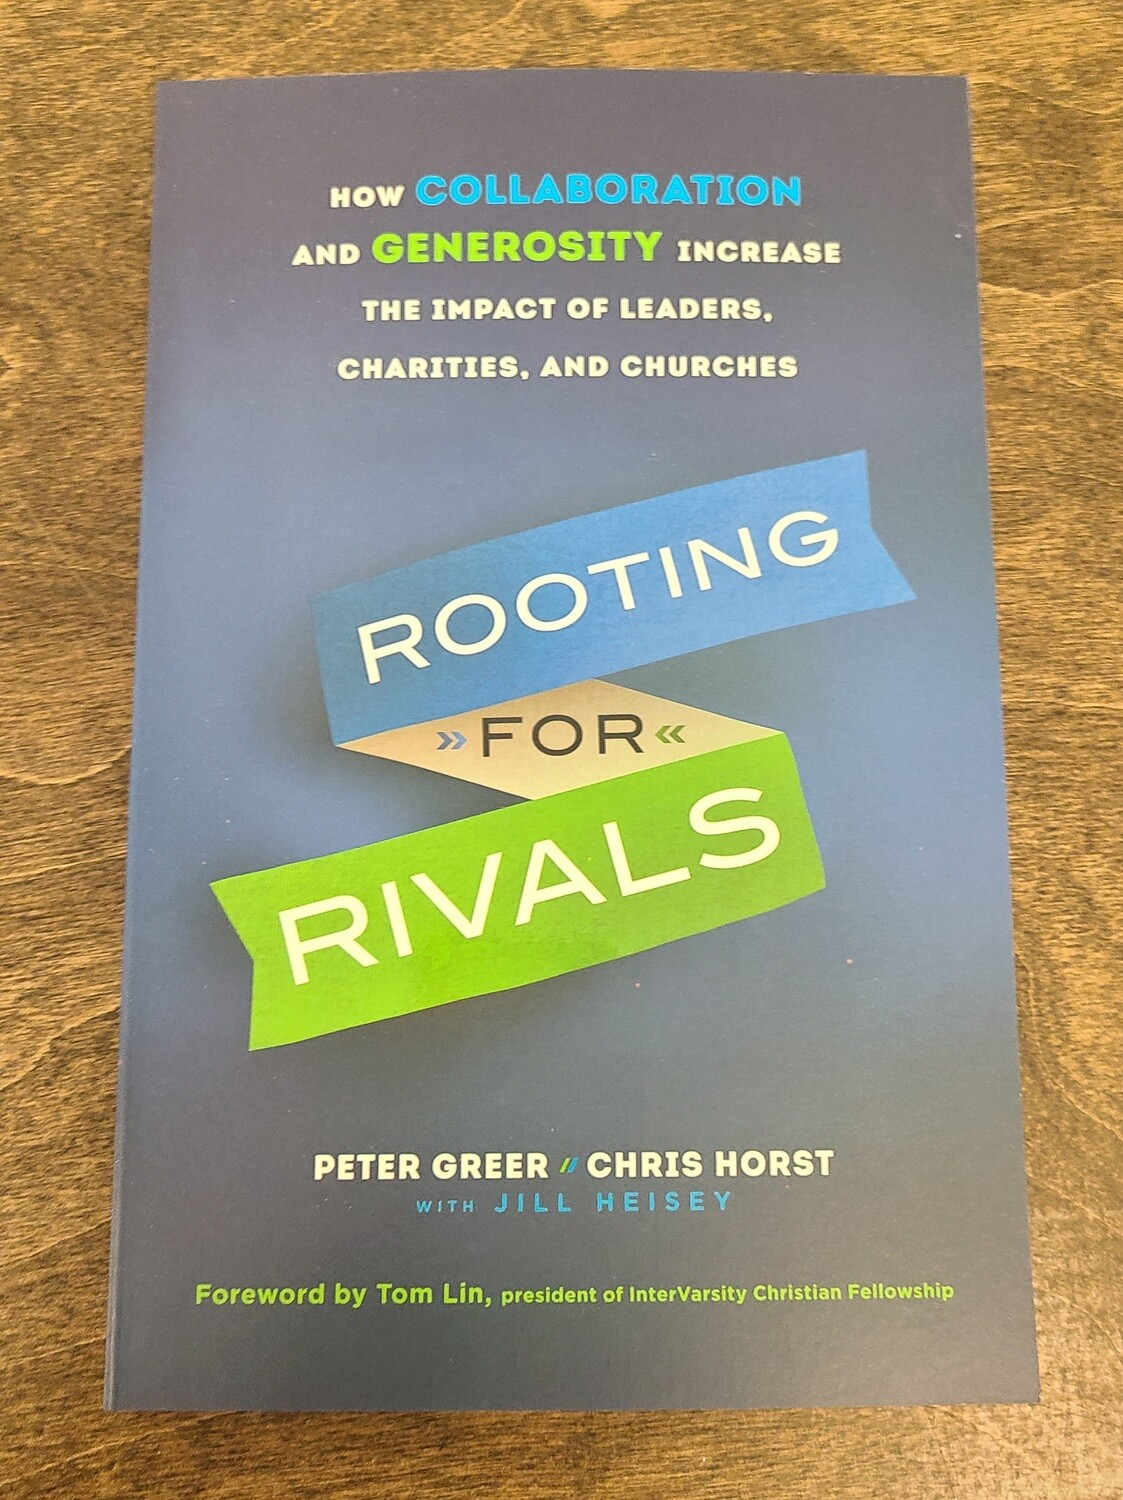 Rooting for Rivals: How Collaboration and Generosity Increase the Impact of Leaders, Charities, and Churches by Peter Greer and Chris Horst with Jill Heisey